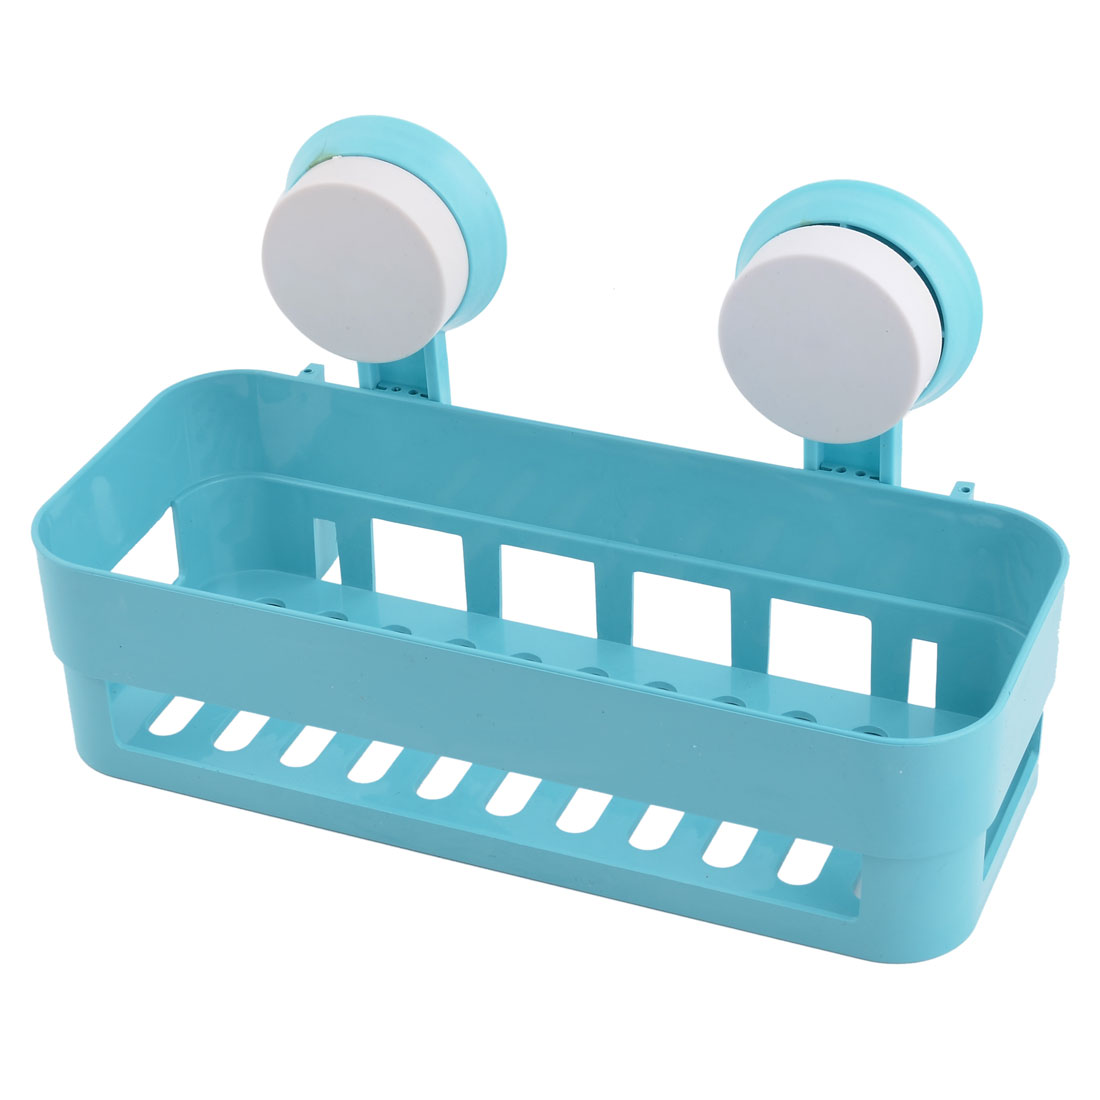 Uxcell Bathroom Plastic Wall Hanging Soap Brush Storage Suction Cup Shelf Holder Blue